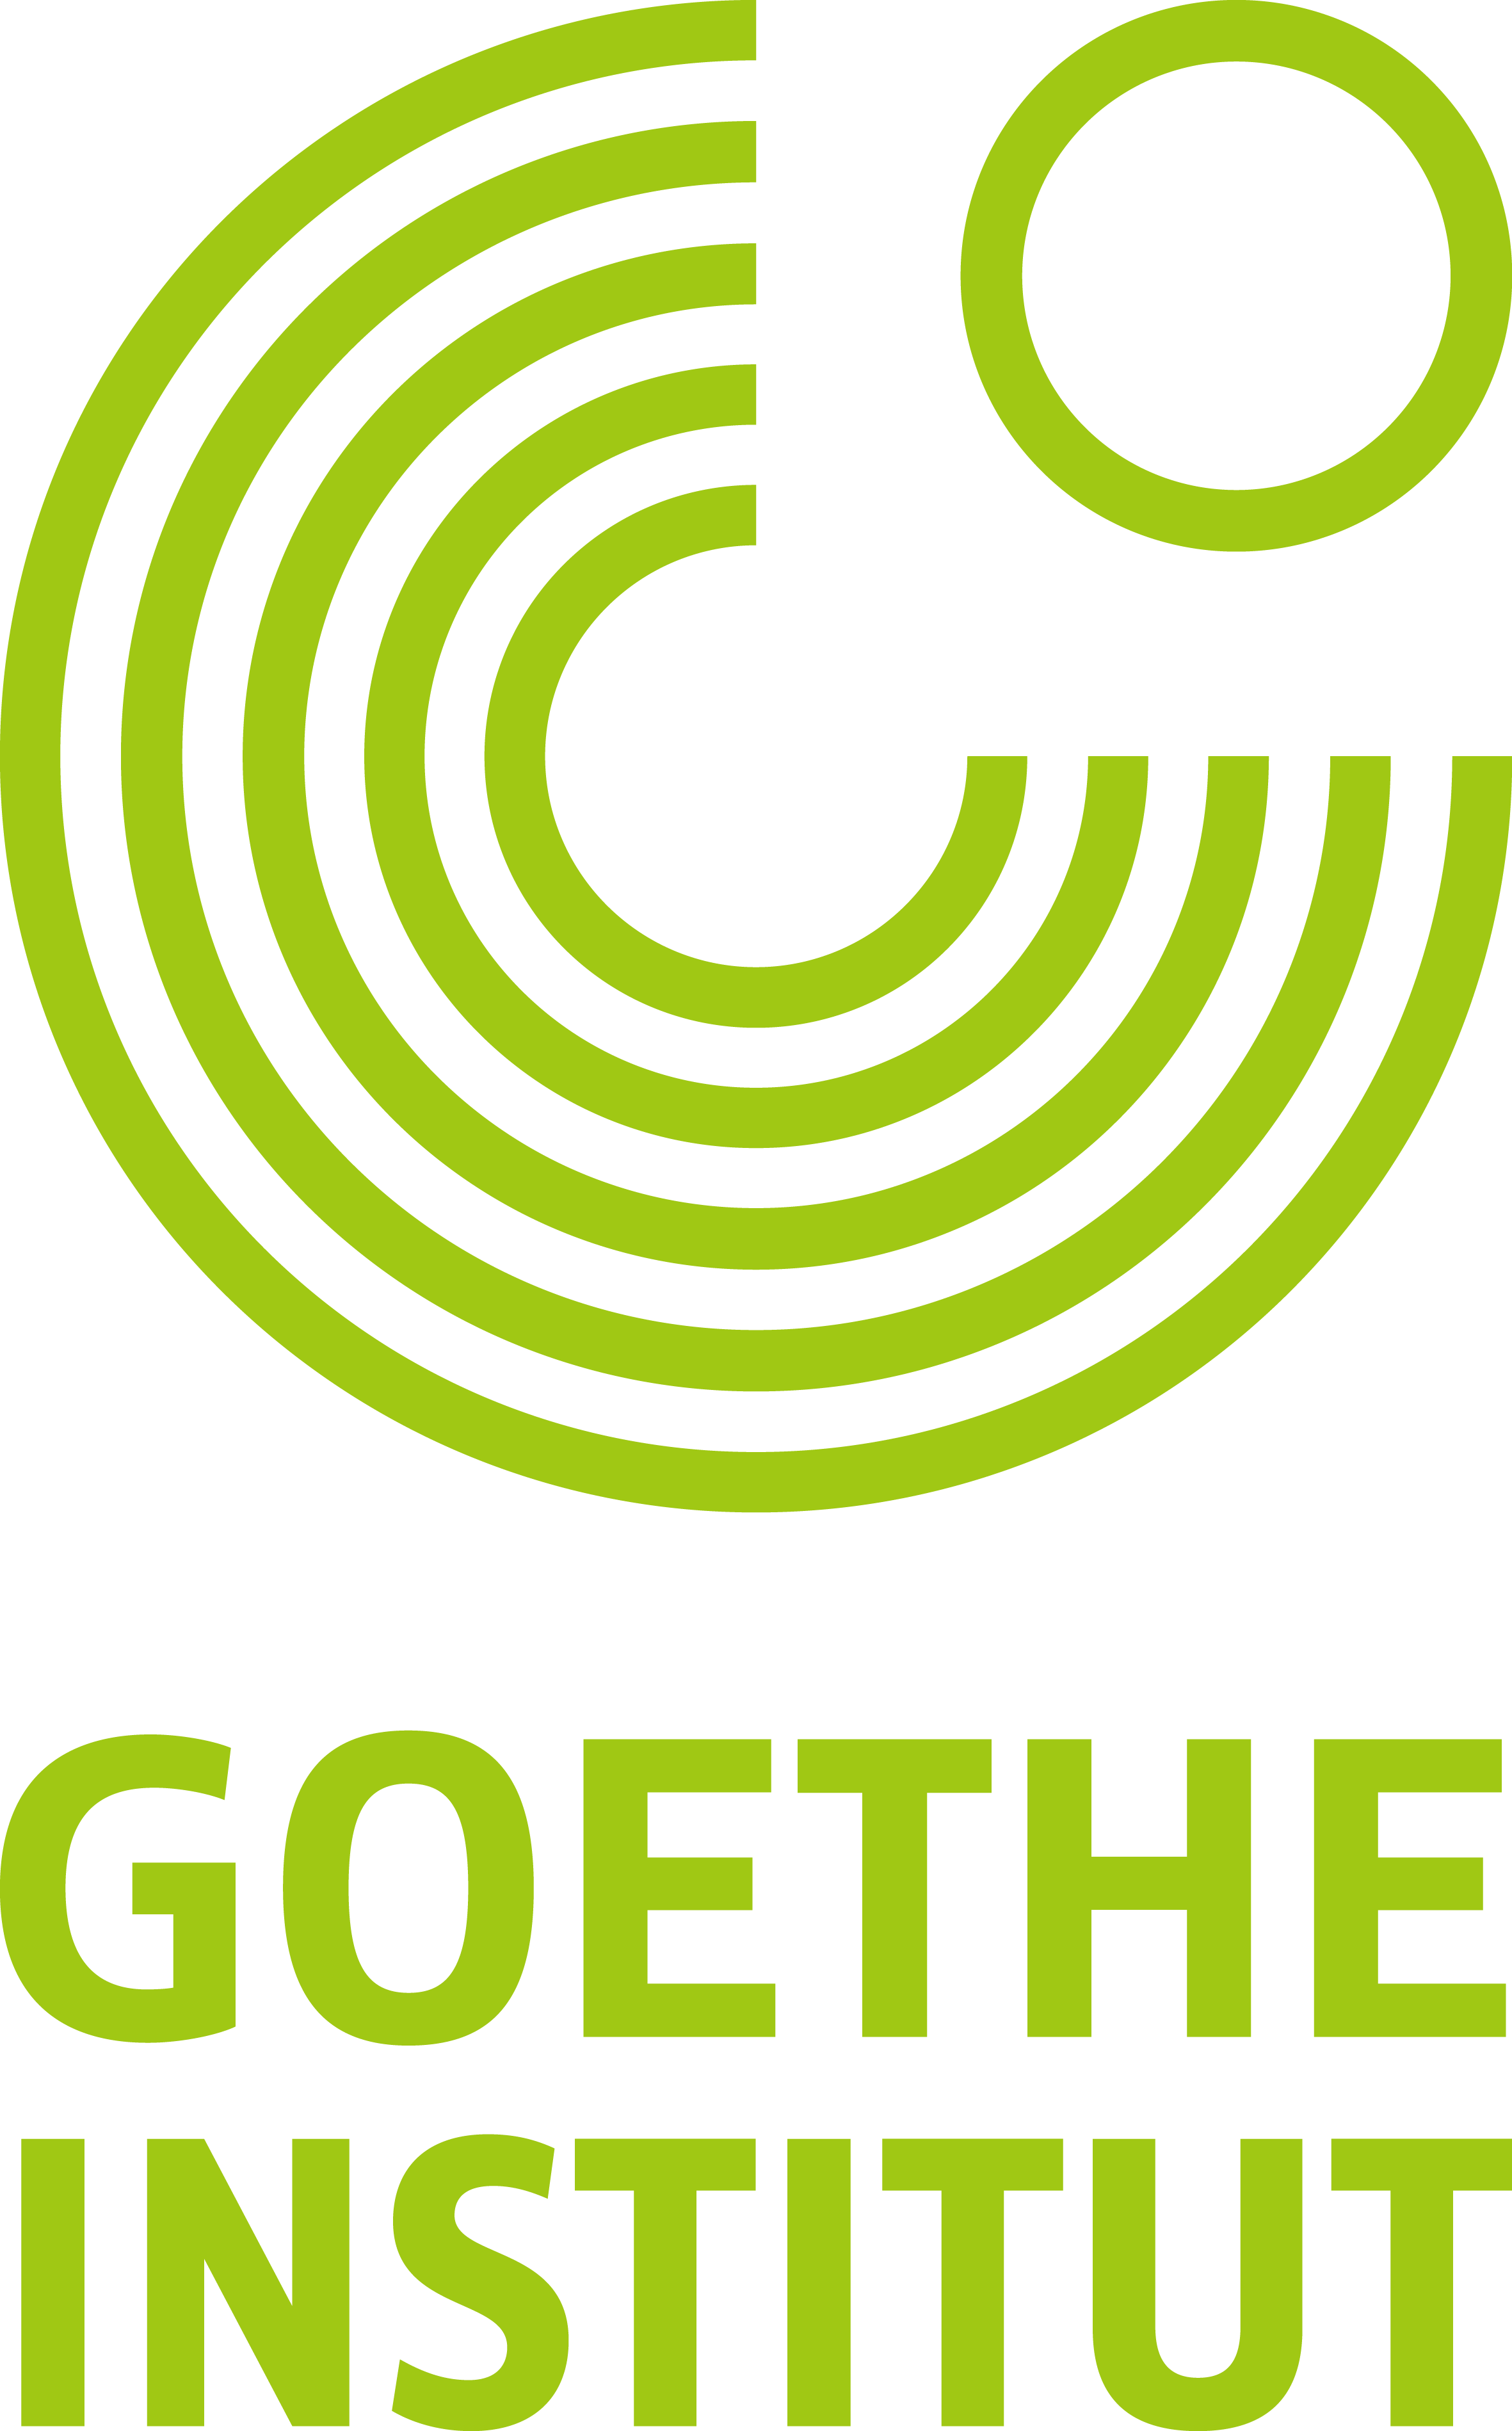 First Fortnight and Goethe Institut - Theatre and Festivals at Project Arts Centre, Dublin